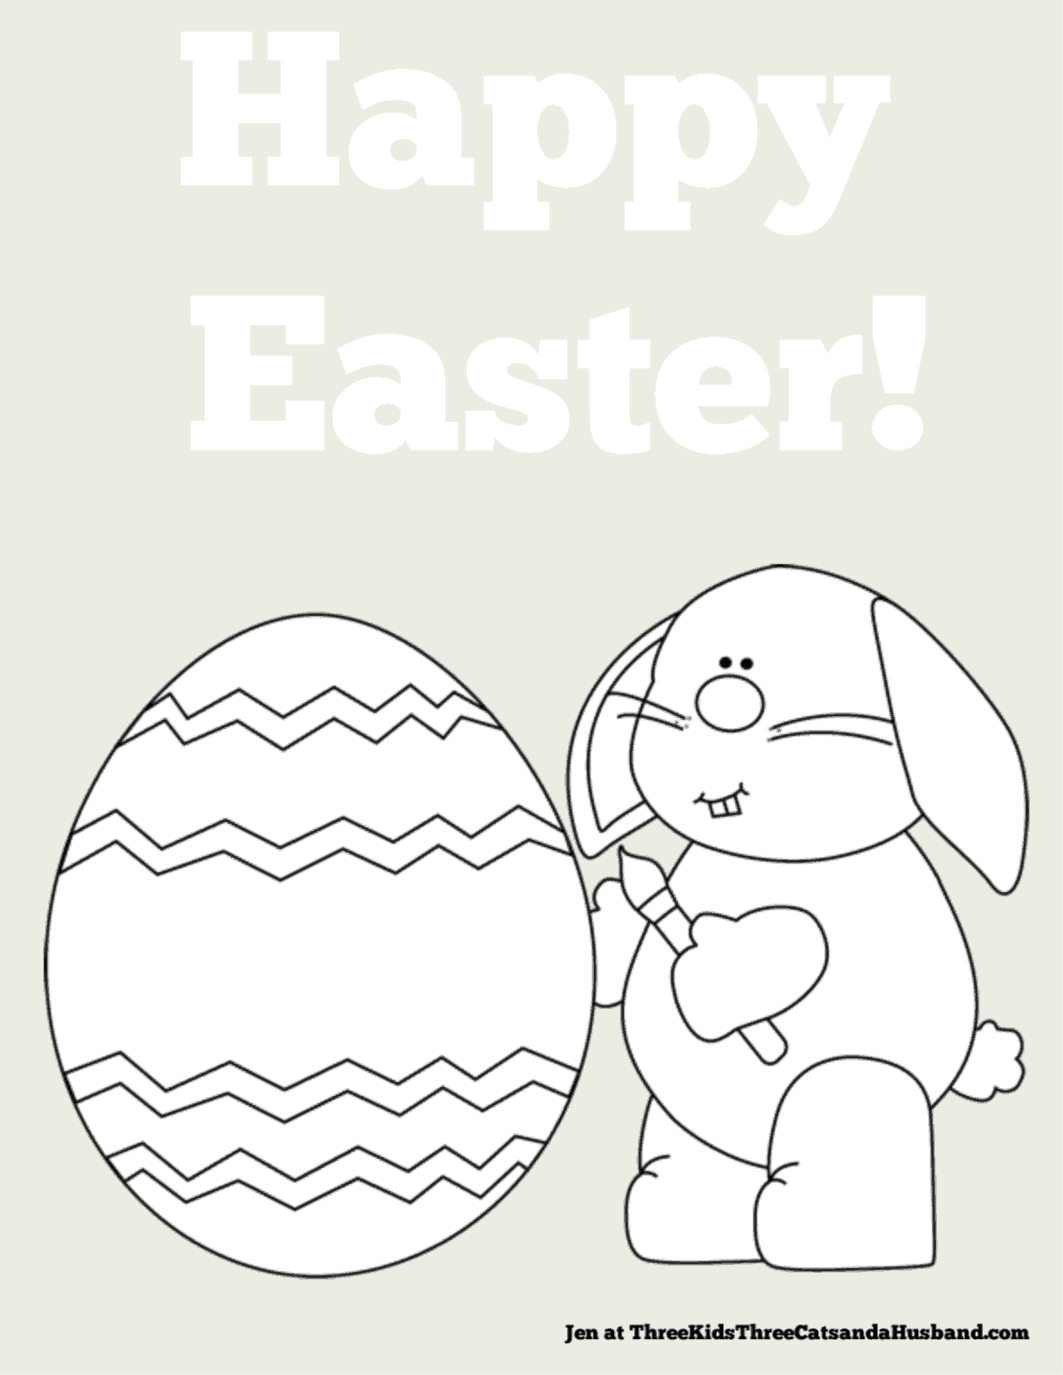 Easter Bunny and Egg coloring page for kids